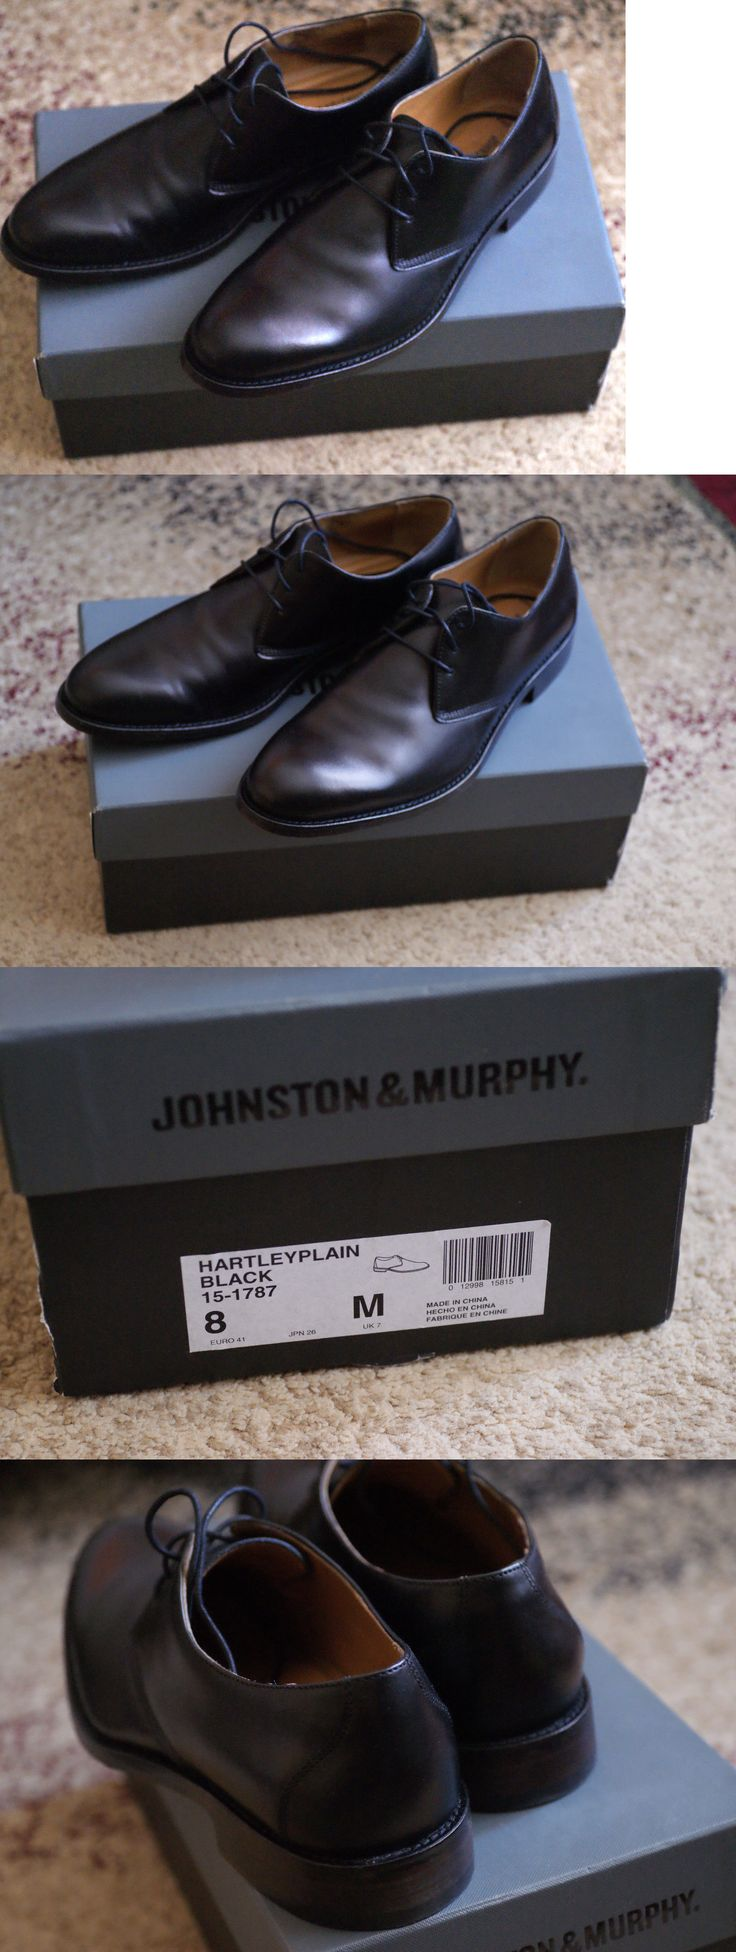 Men Shoes: New Johnson And Murphy Men S Black Genuine Leather Dress Shoes Size 8M -> BUY IT NOW ONLY: $78.29 on eBay!